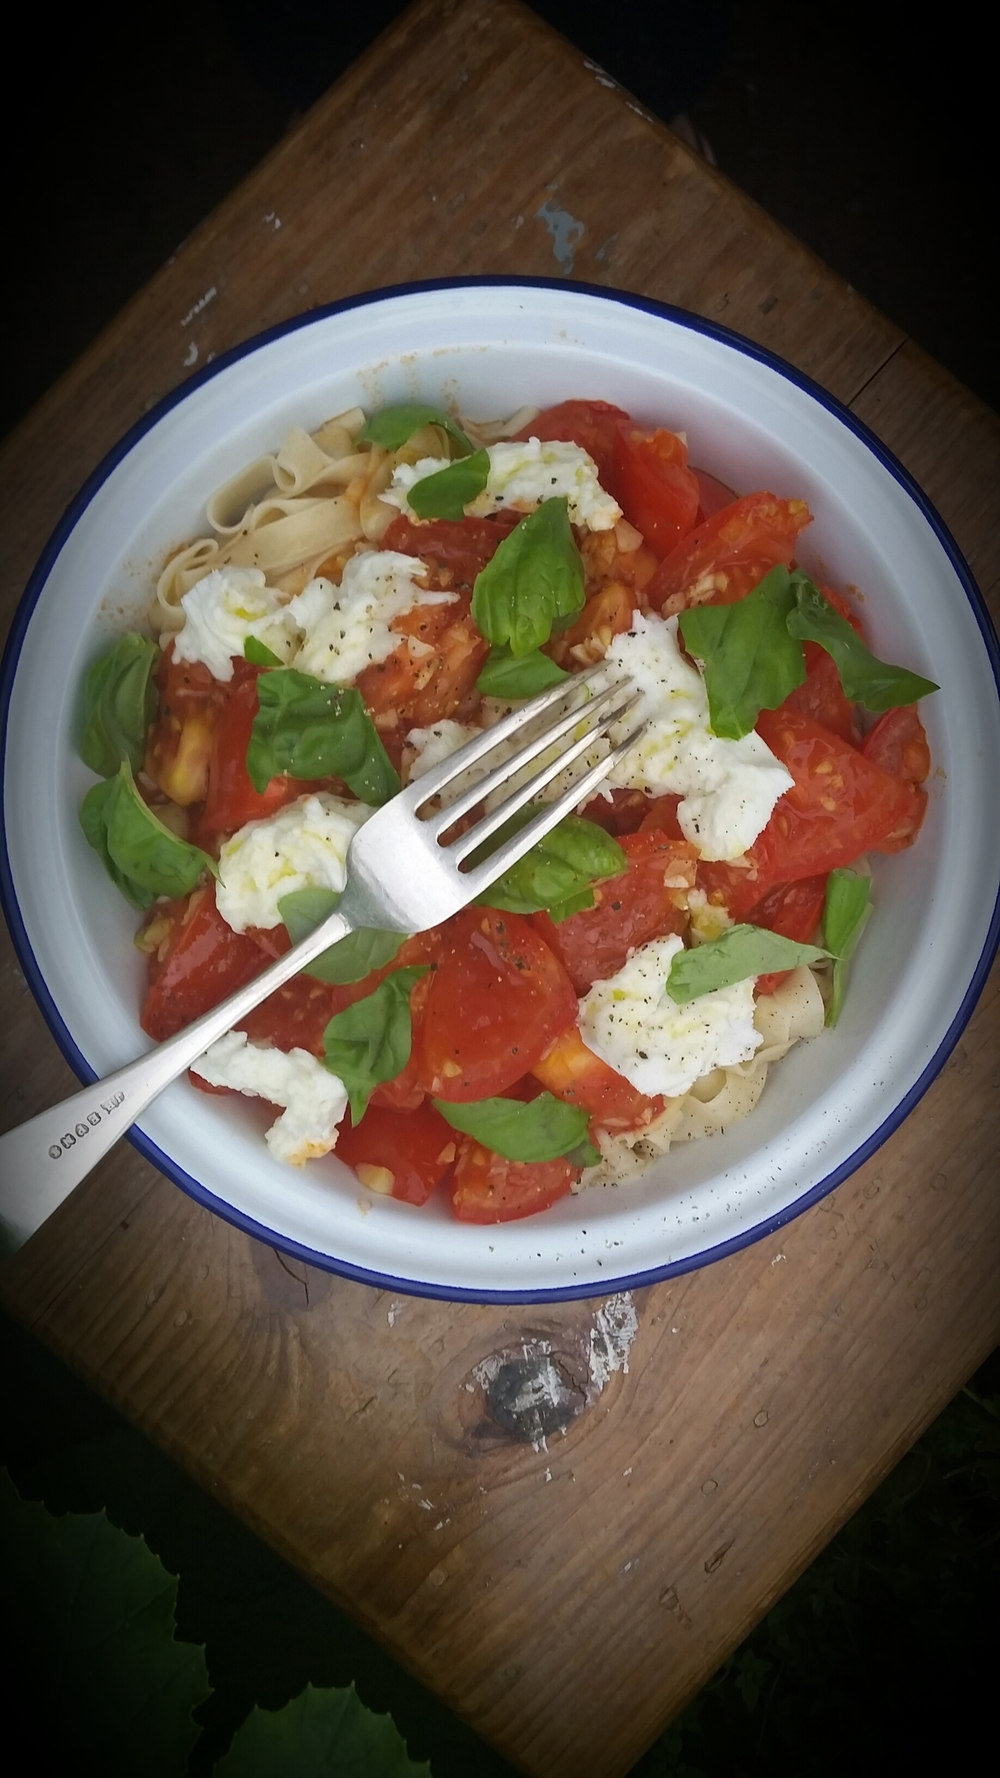 home made tagliatelle buffalo mozzarella home grown tomatoes & basil